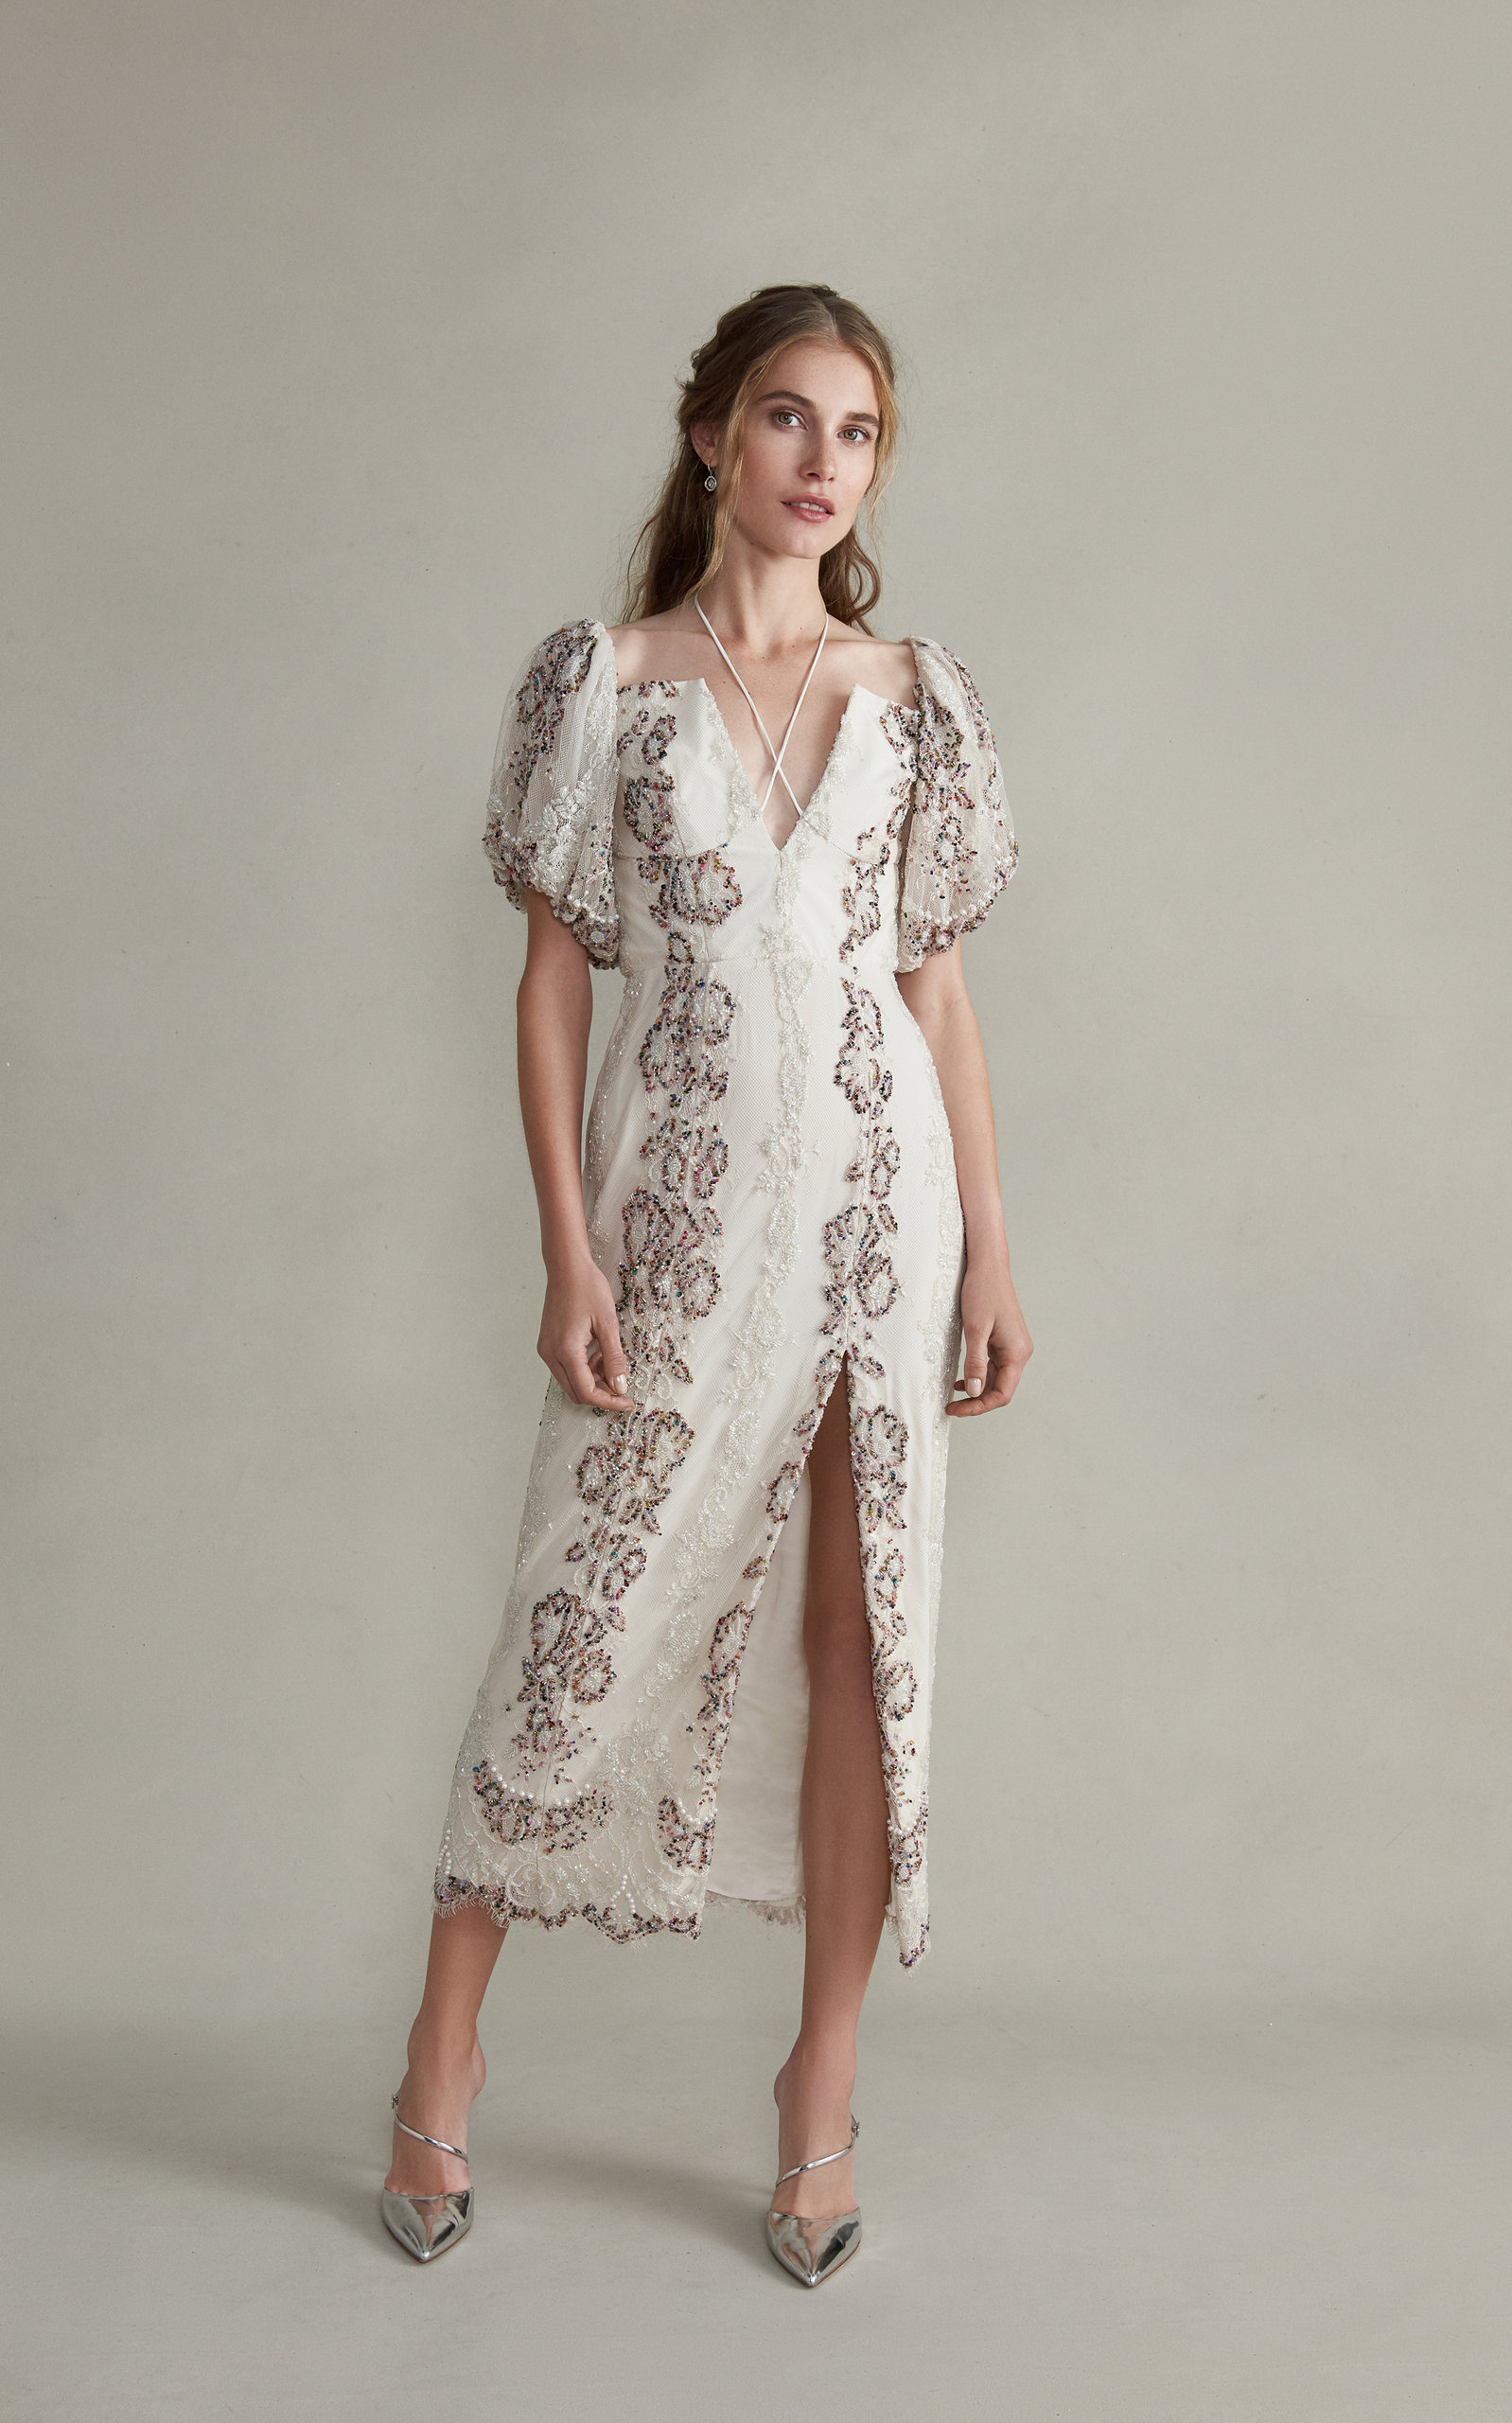 MARKARIAN Hestia V-Neck Midi Embroidered Lace Dress With Front Slit in White